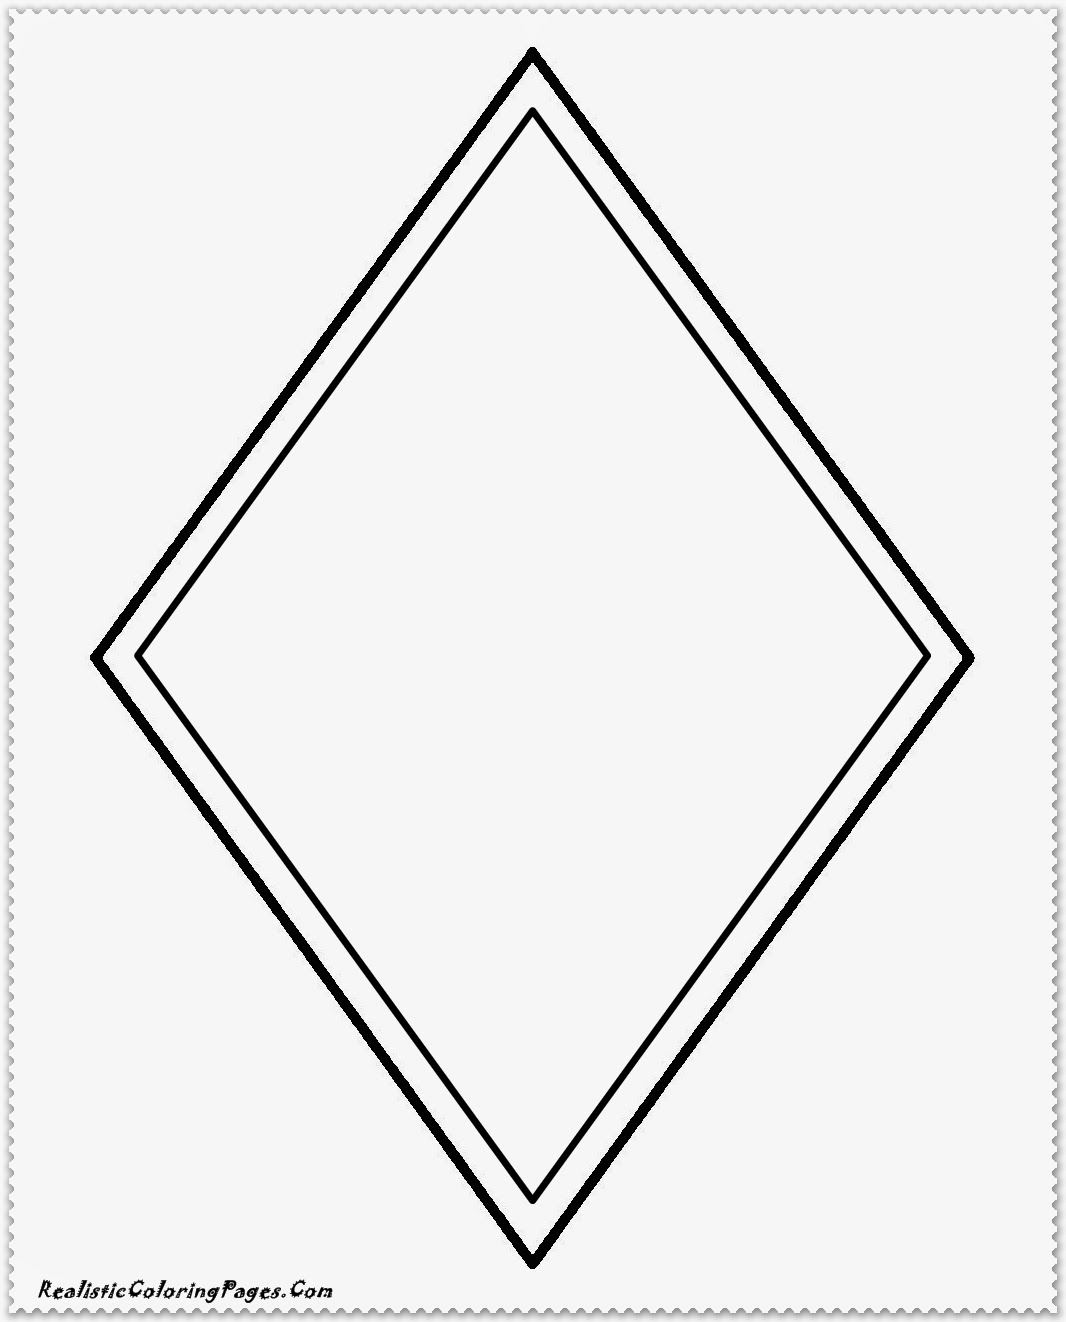 Simple Shape Coloring Pages | Realistic Coloring Pages